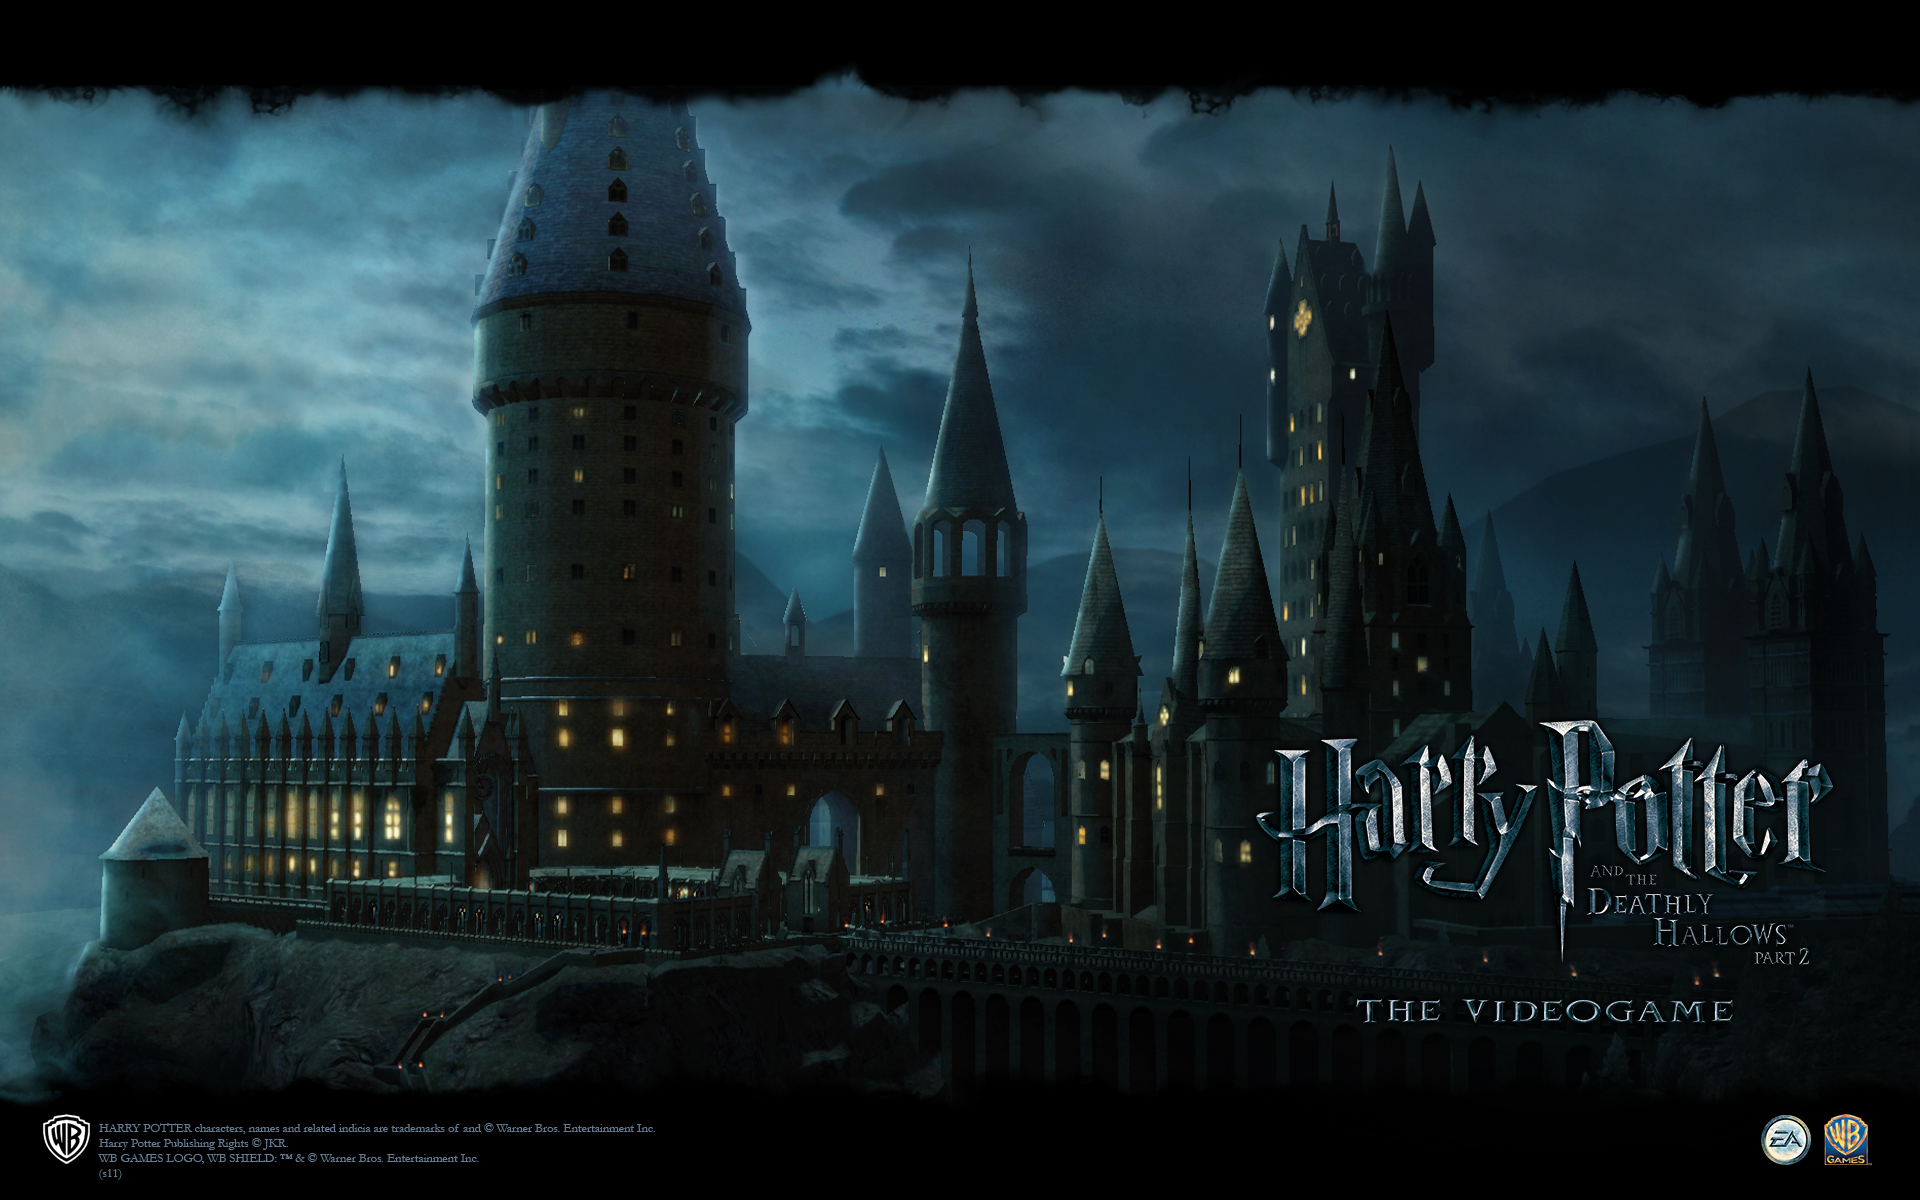 Cool Wallpaper Harry Potter Lock Screen - 4lRx3i  Graphic_749878.jpg